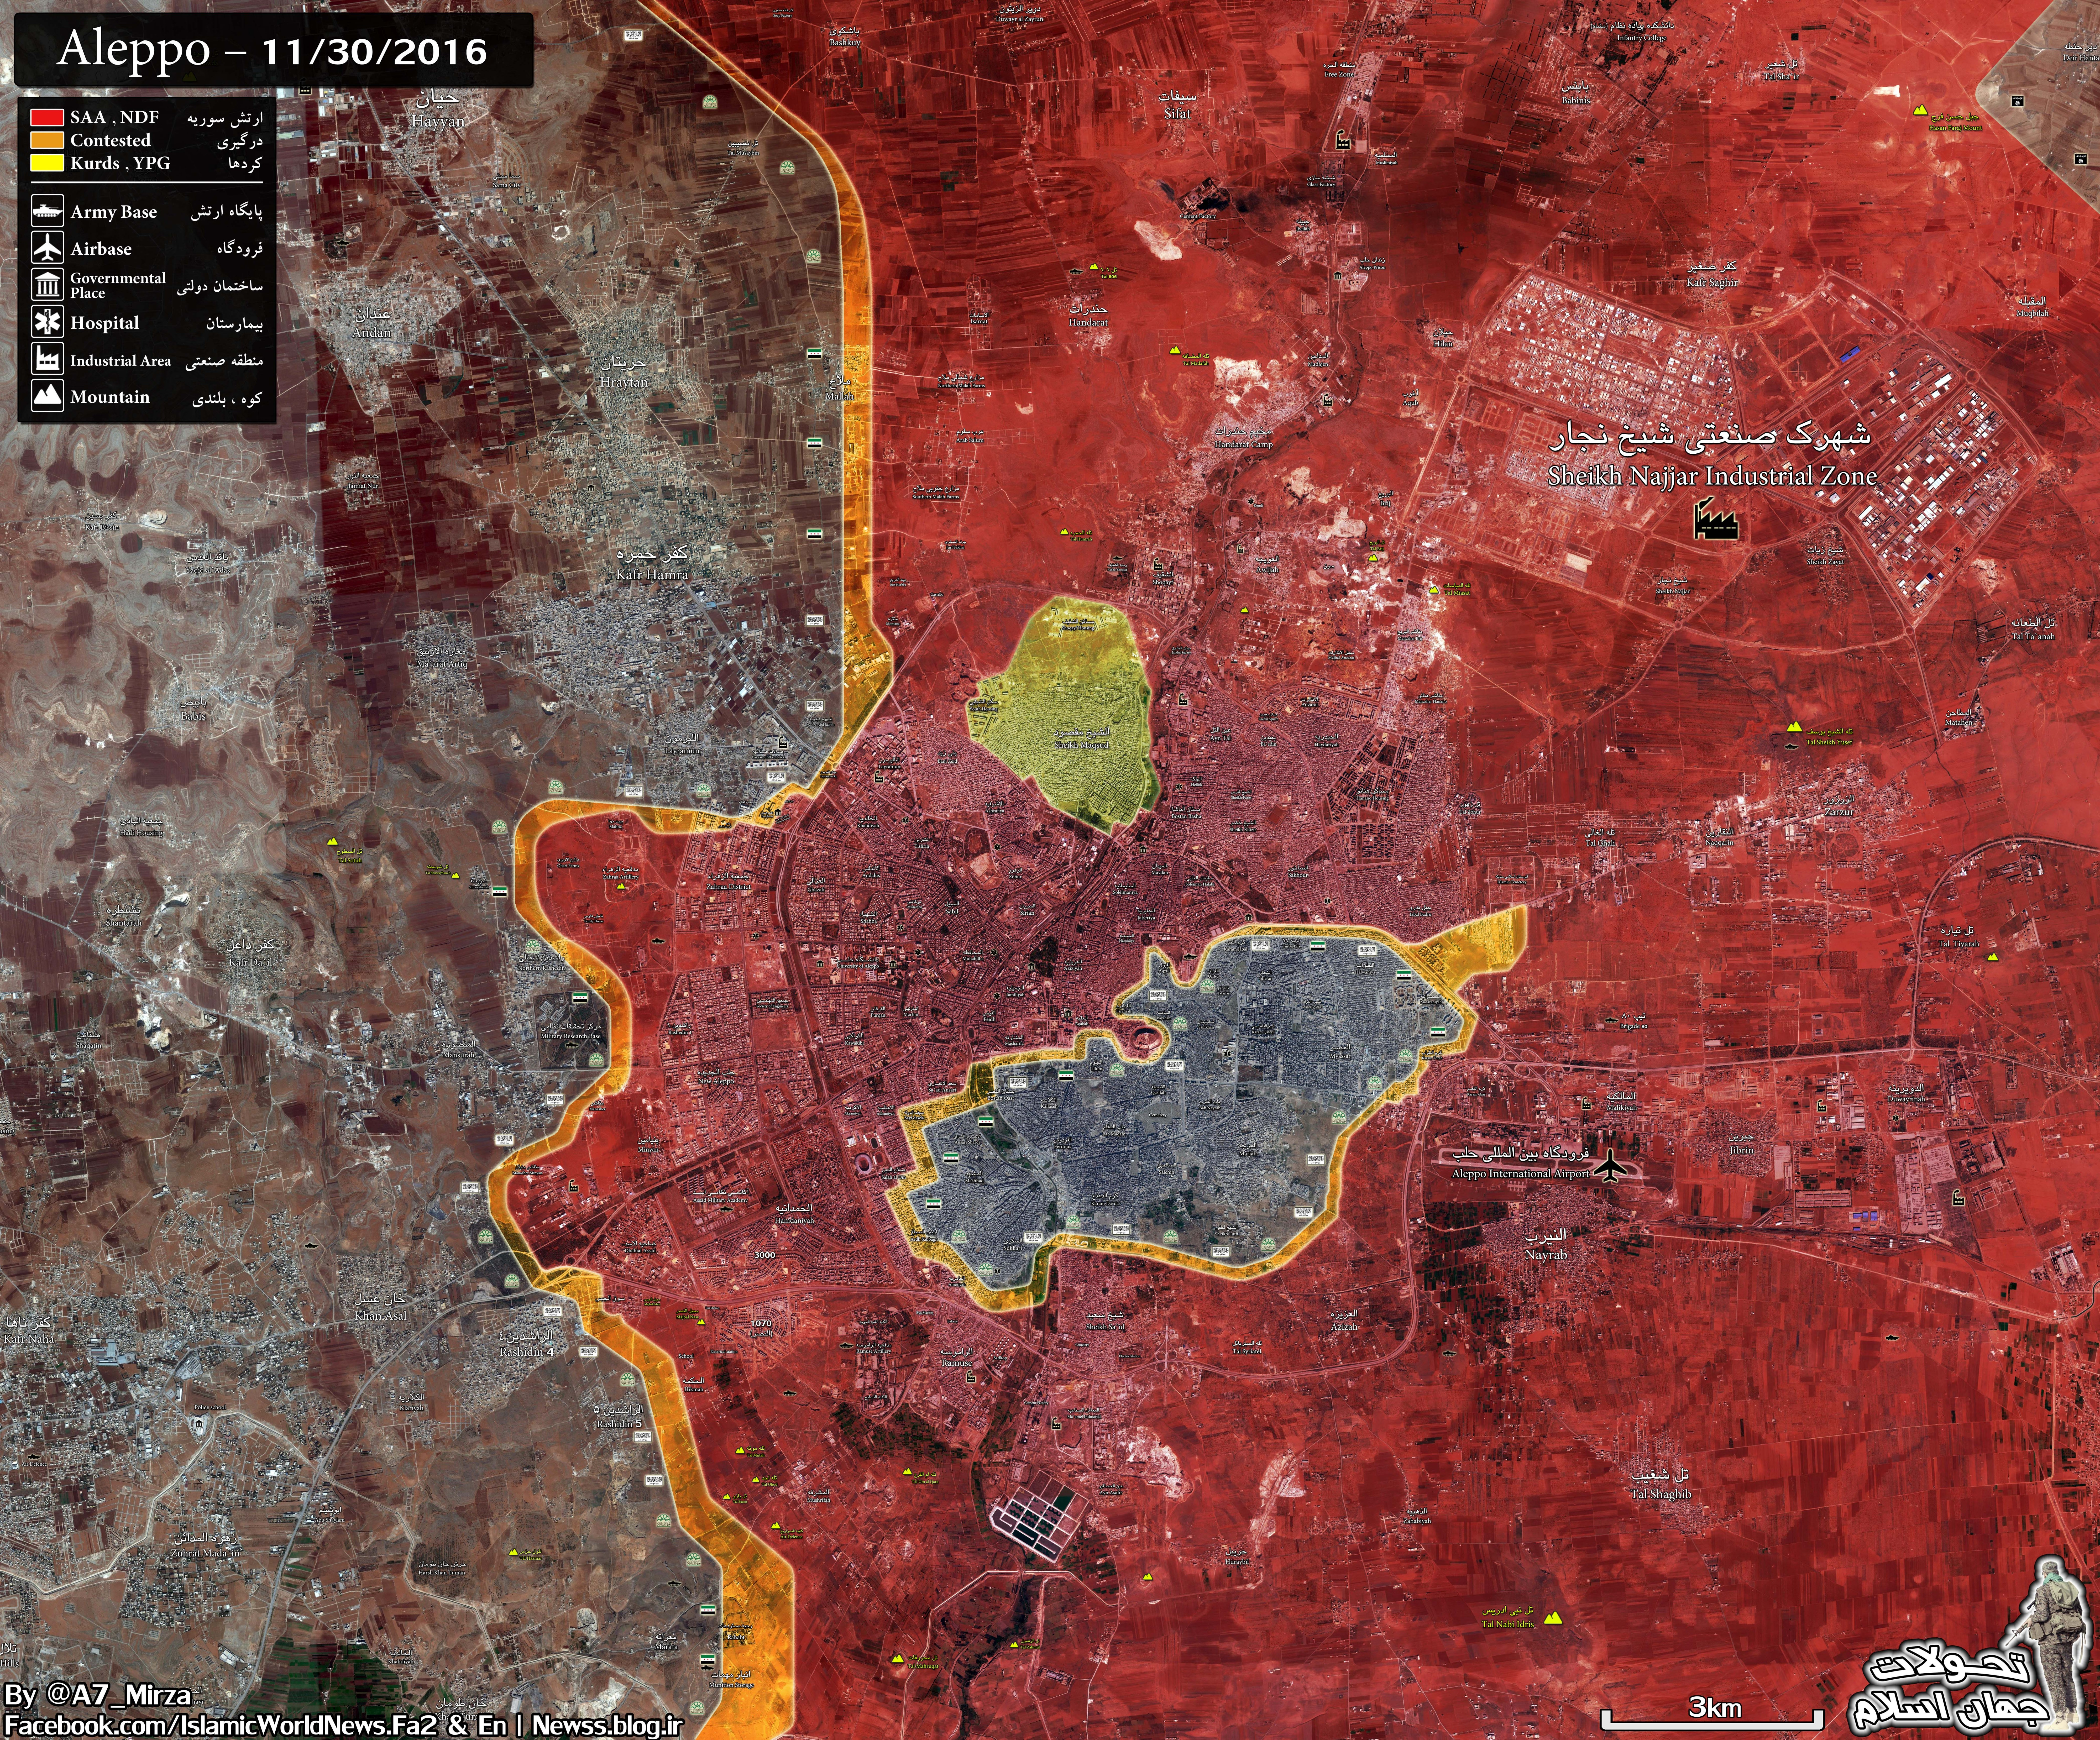 Russia: 16 Neighborhoods of Aleppo City Liberated, 18,000 Civilians Freed from Militant-Held Areas